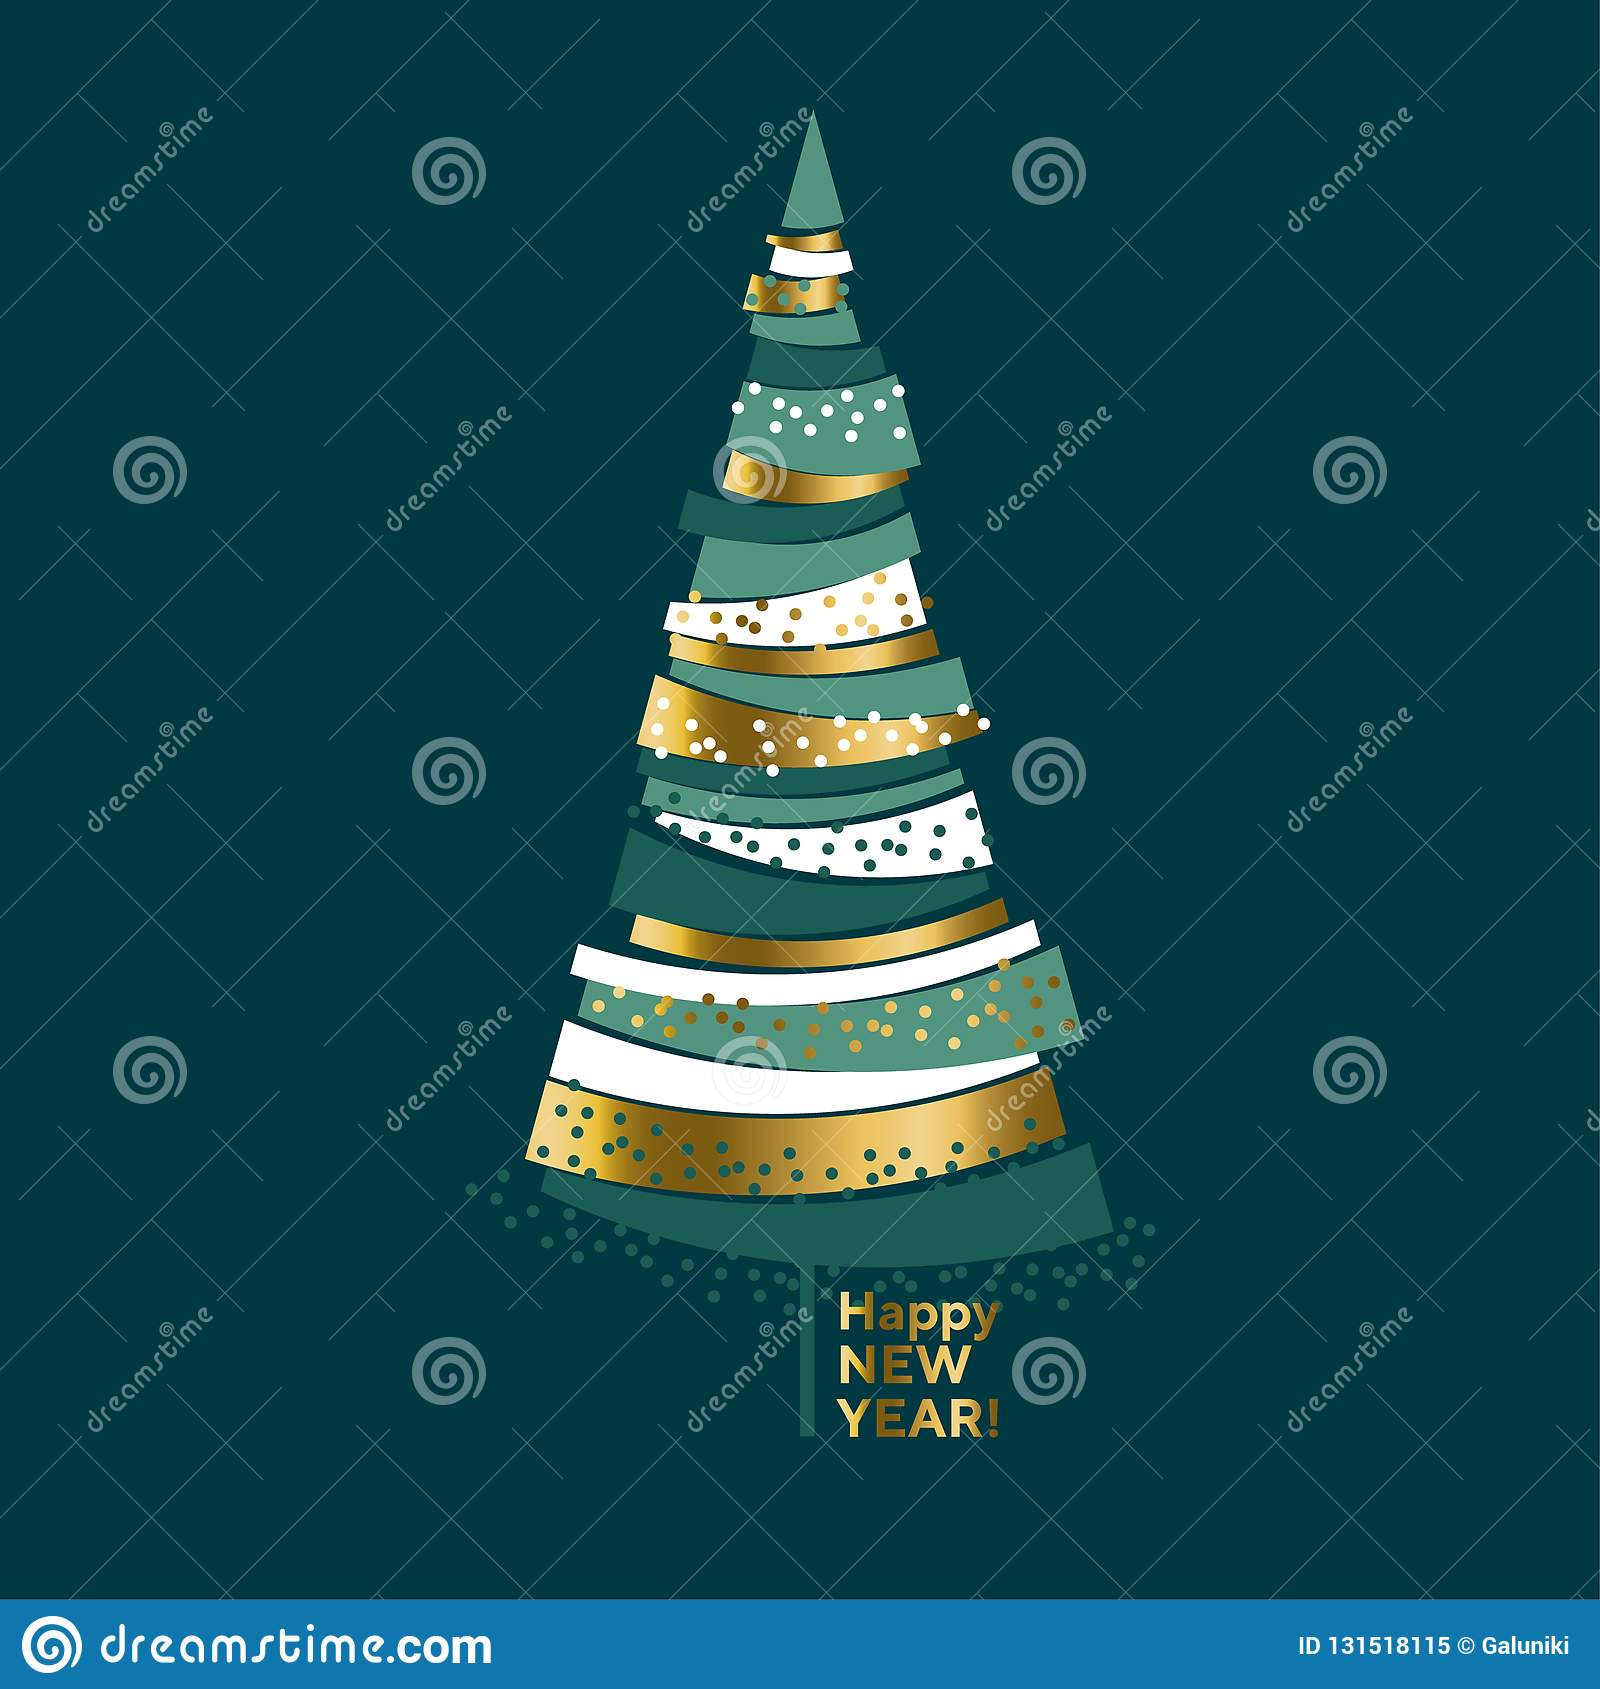 Luxury elegant gold and green Christmas tree.